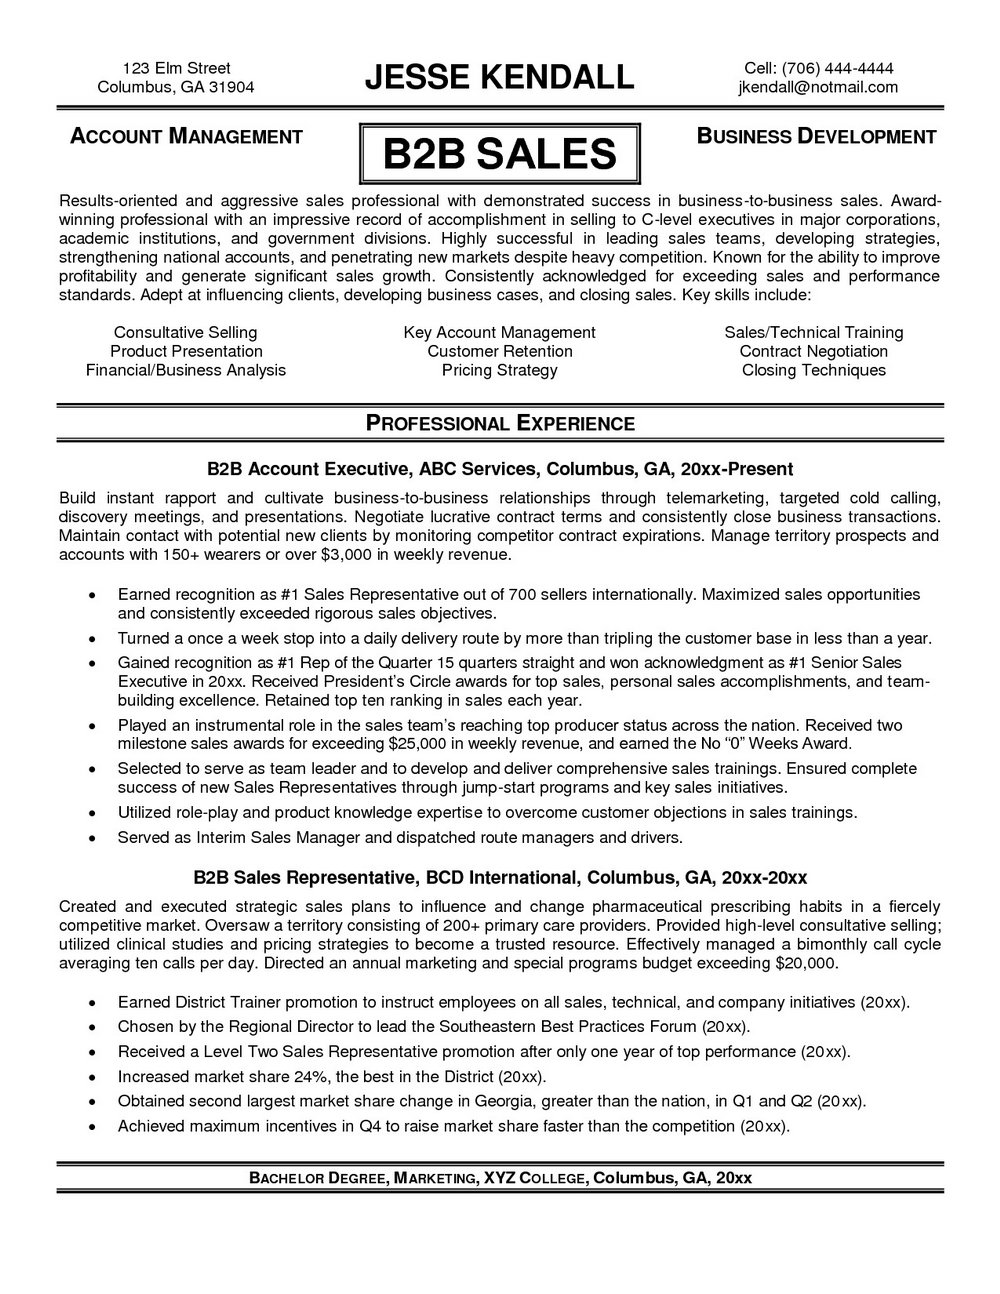 Resume Samples For Sales Professionals